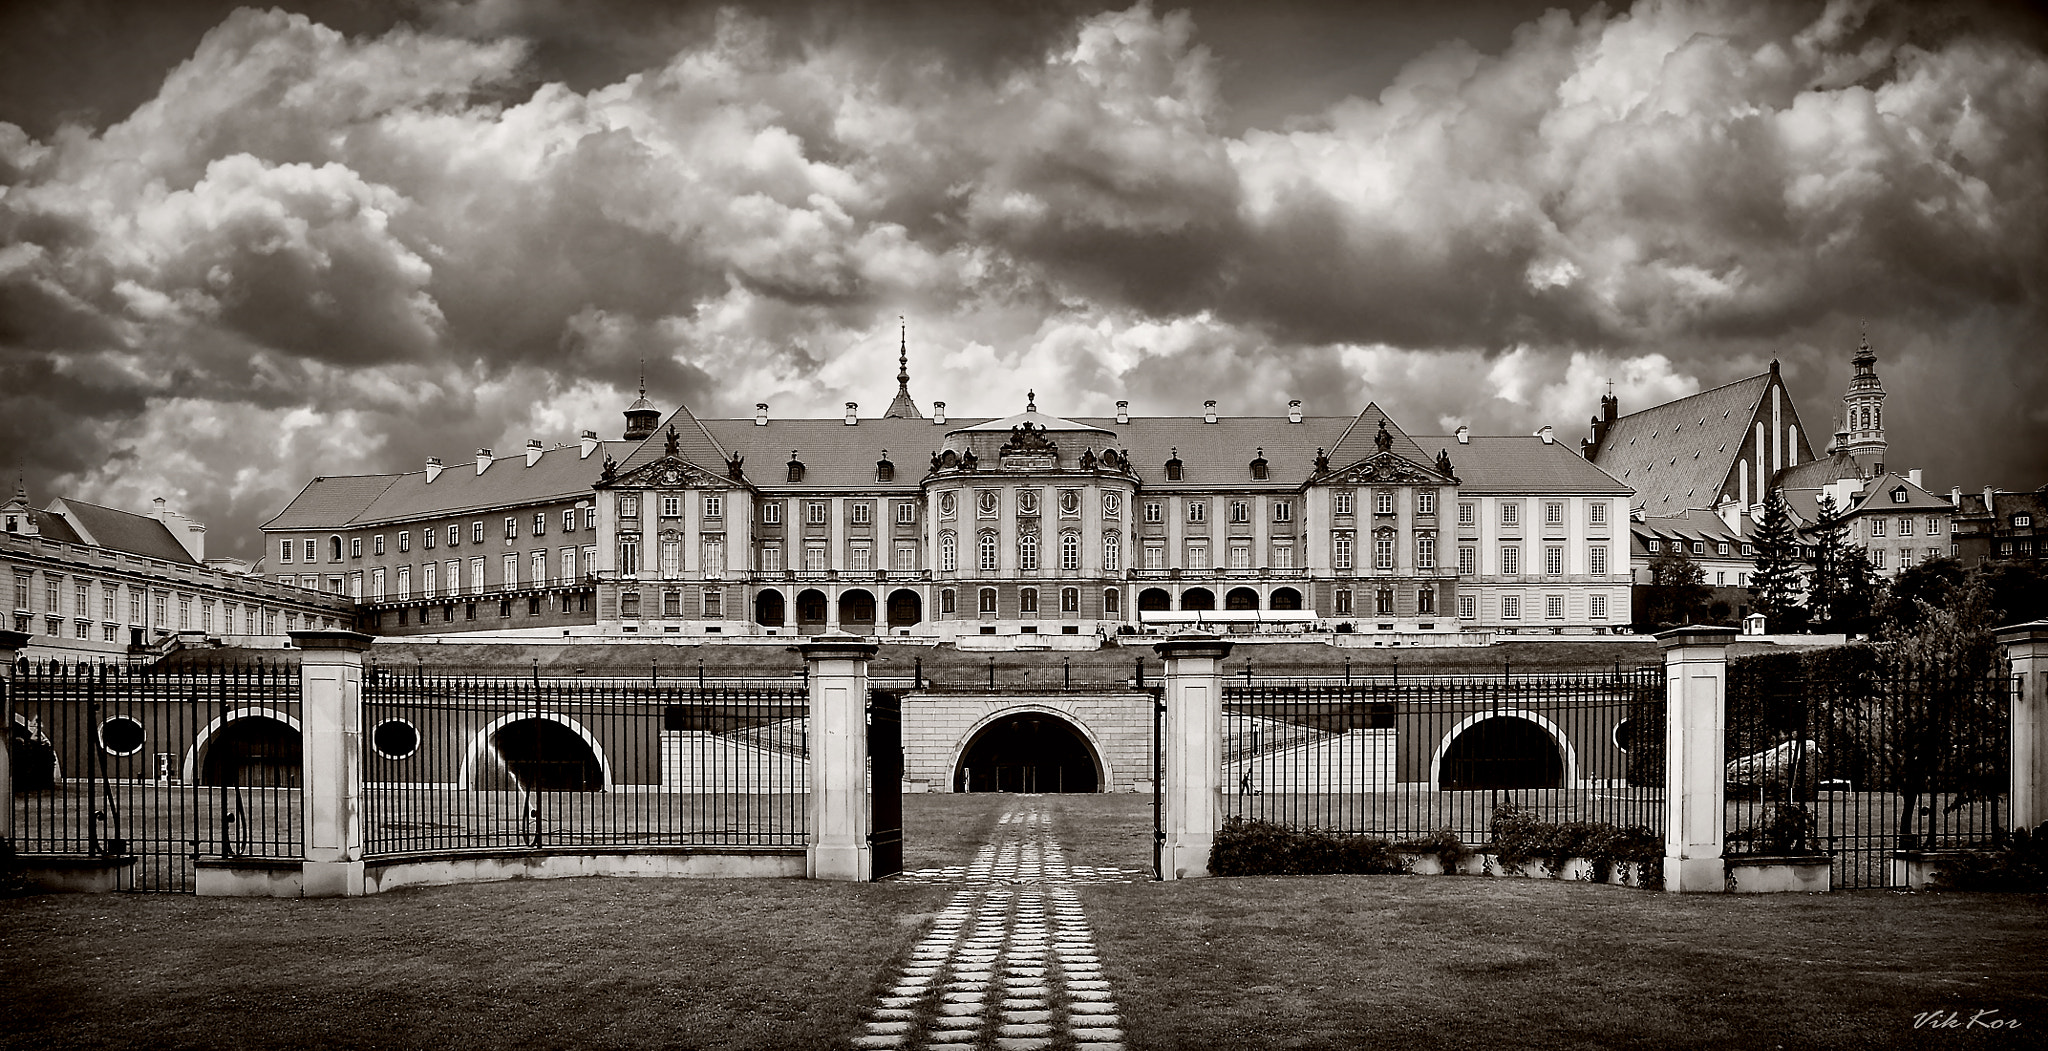 Photograph The Royal Castle in Warsaw II by Viktor Korostynski on 500px